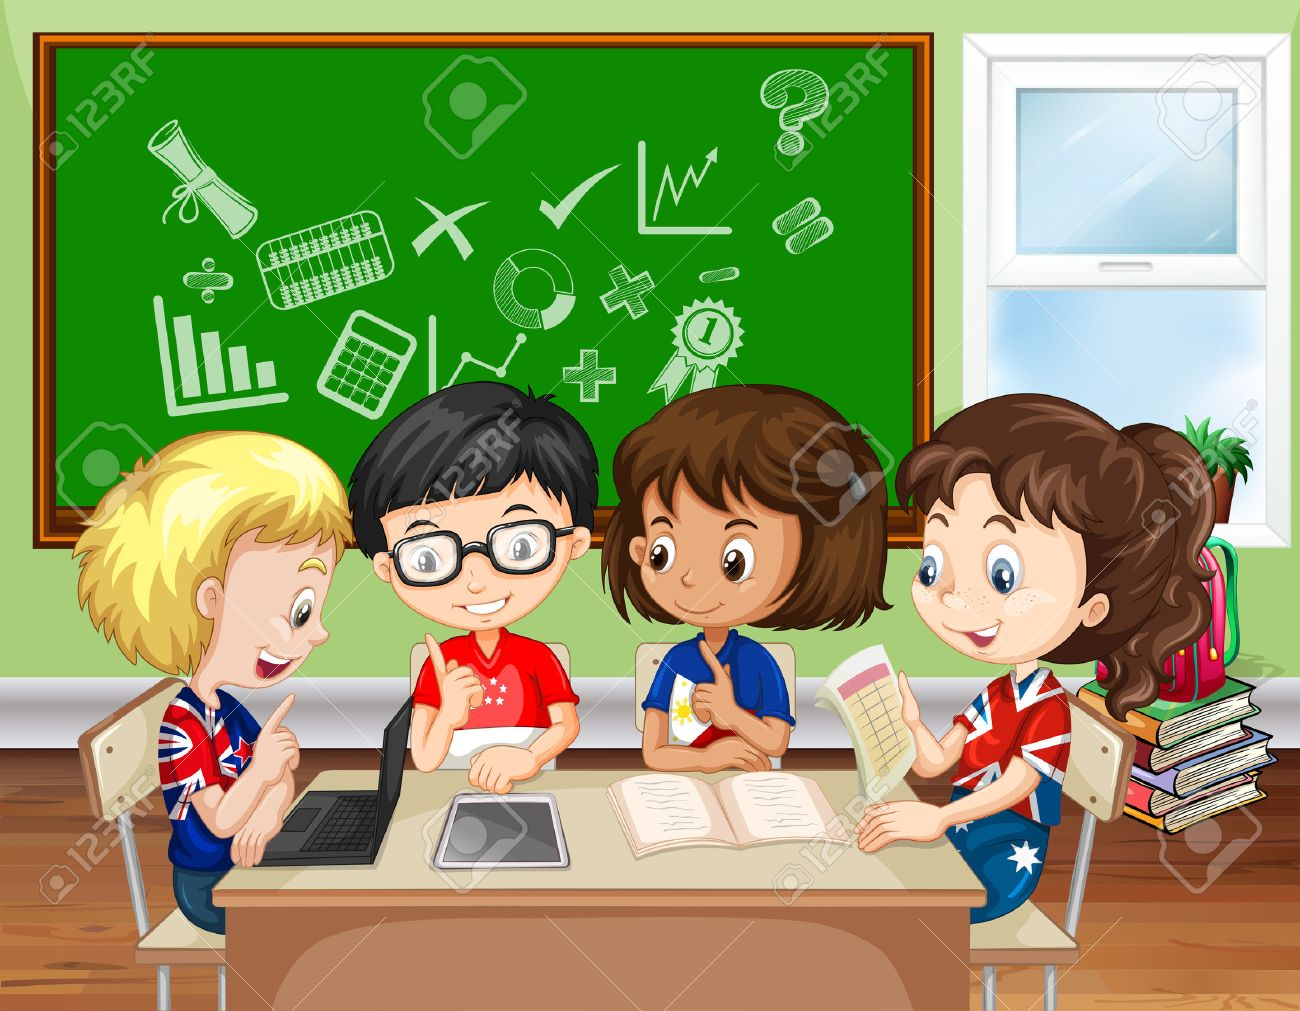 Children working in group in the classroom illustration.